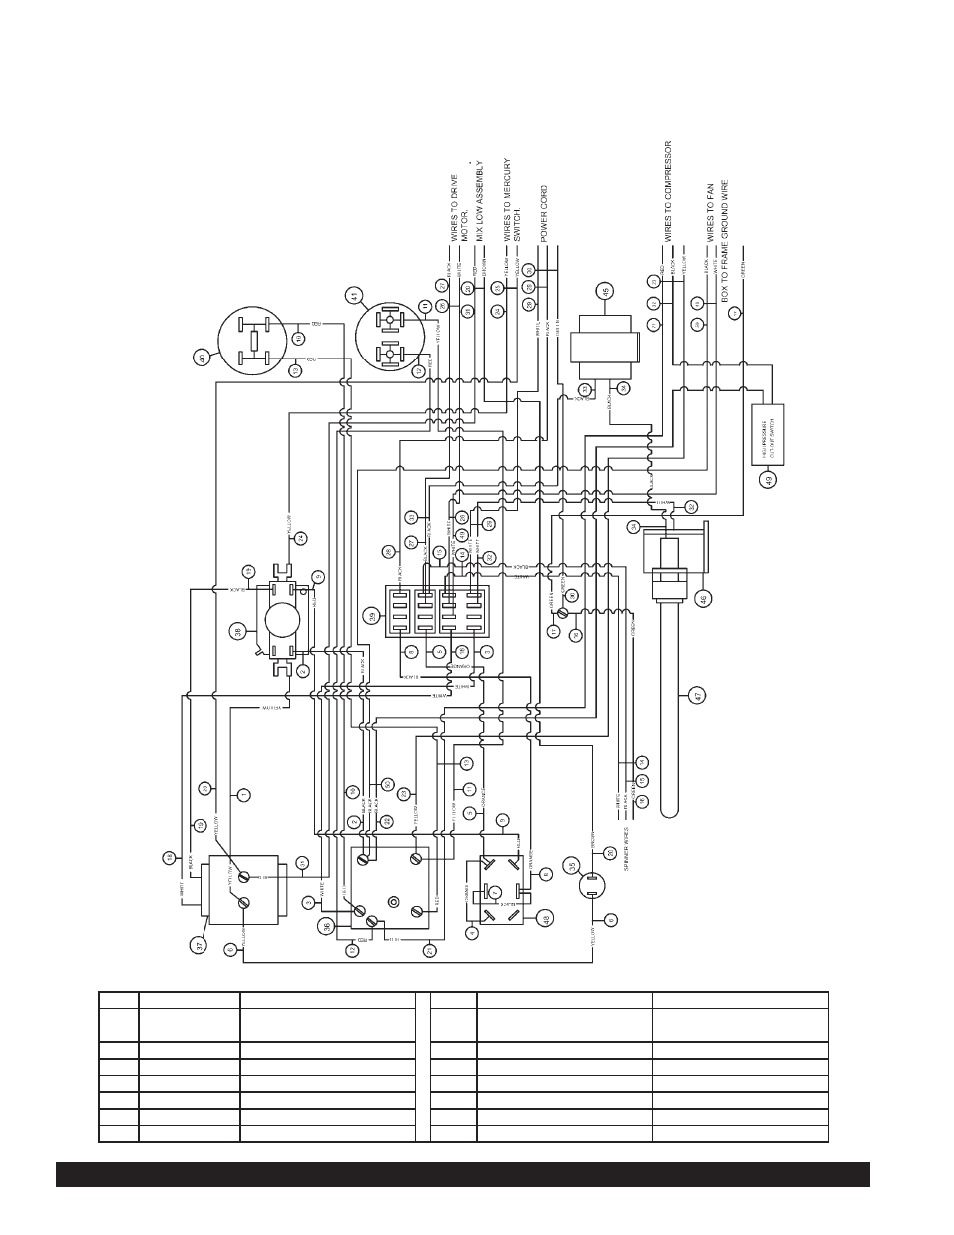 beverage air grindmaster 3311 page28 model 3311 wiring diagram water cooled model beverage air Beverage Air Electrical Schematic at mr168.co